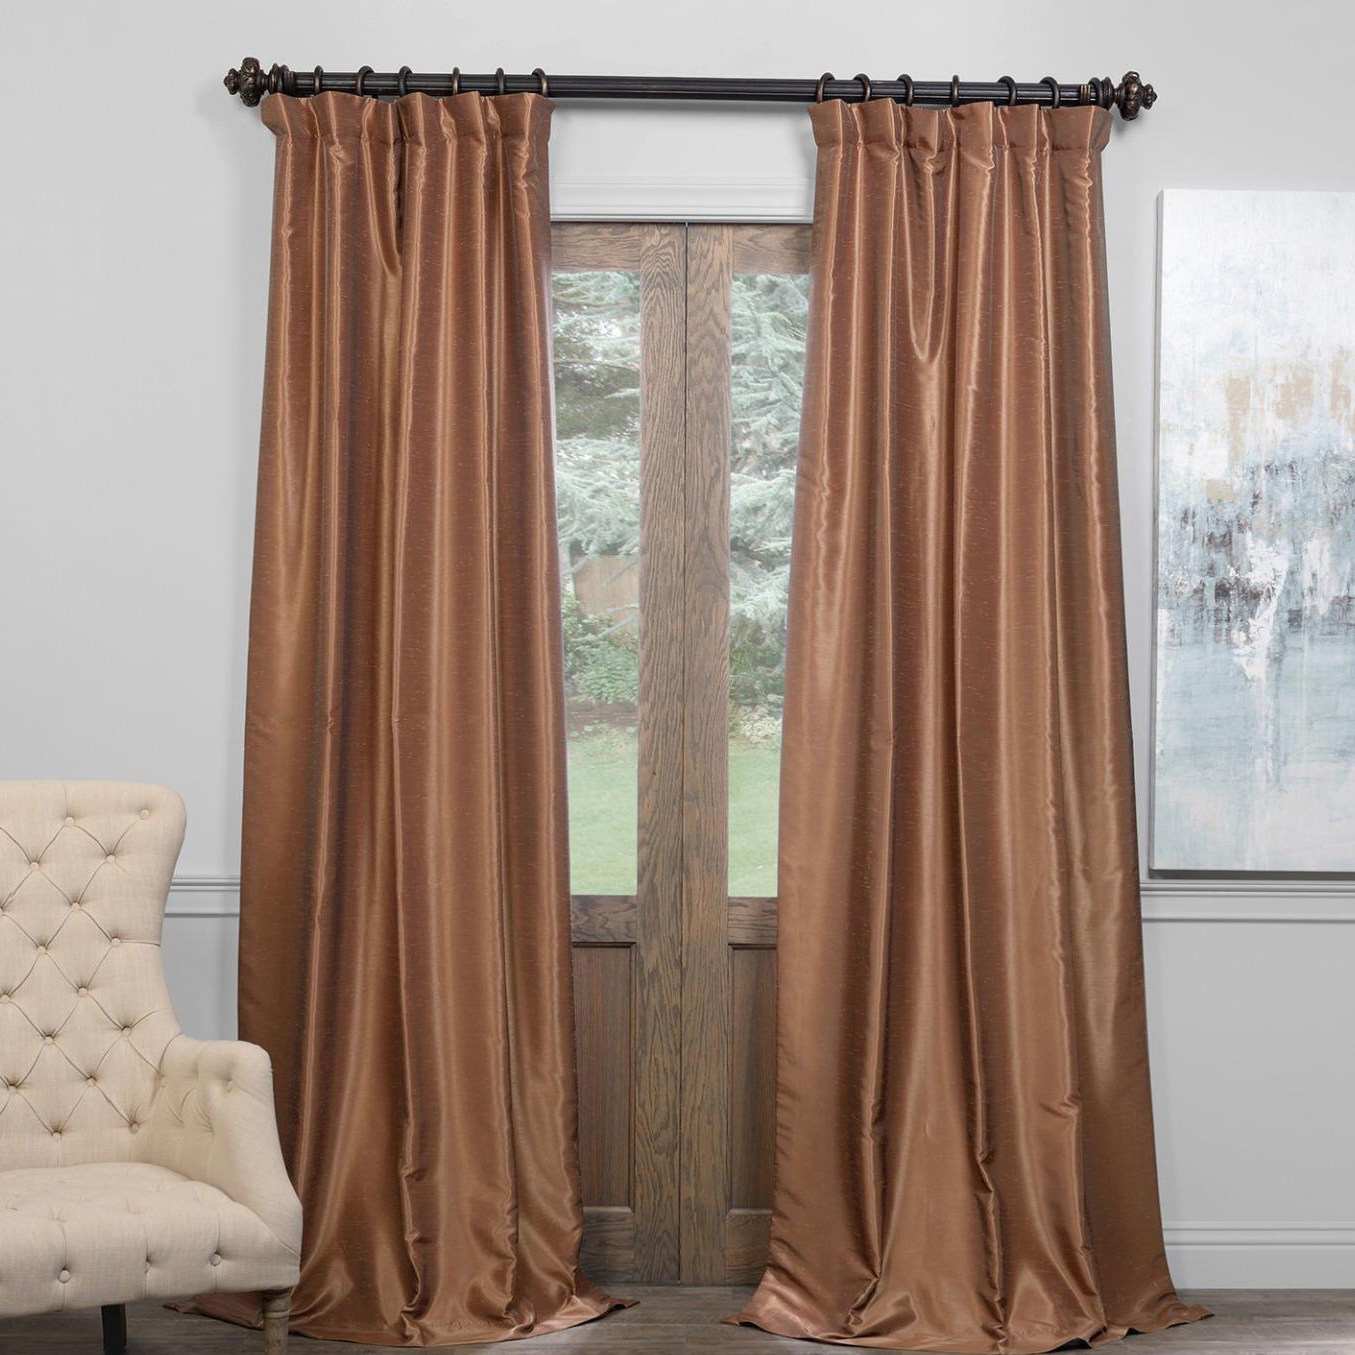 Exclusive Fabrics True Blackout Vintage Textured Faux Dupioni Silk Curtain Panel Pertaining To Vintage Textured Faux Dupioni Silk Curtain Panels (View 4 of 30)